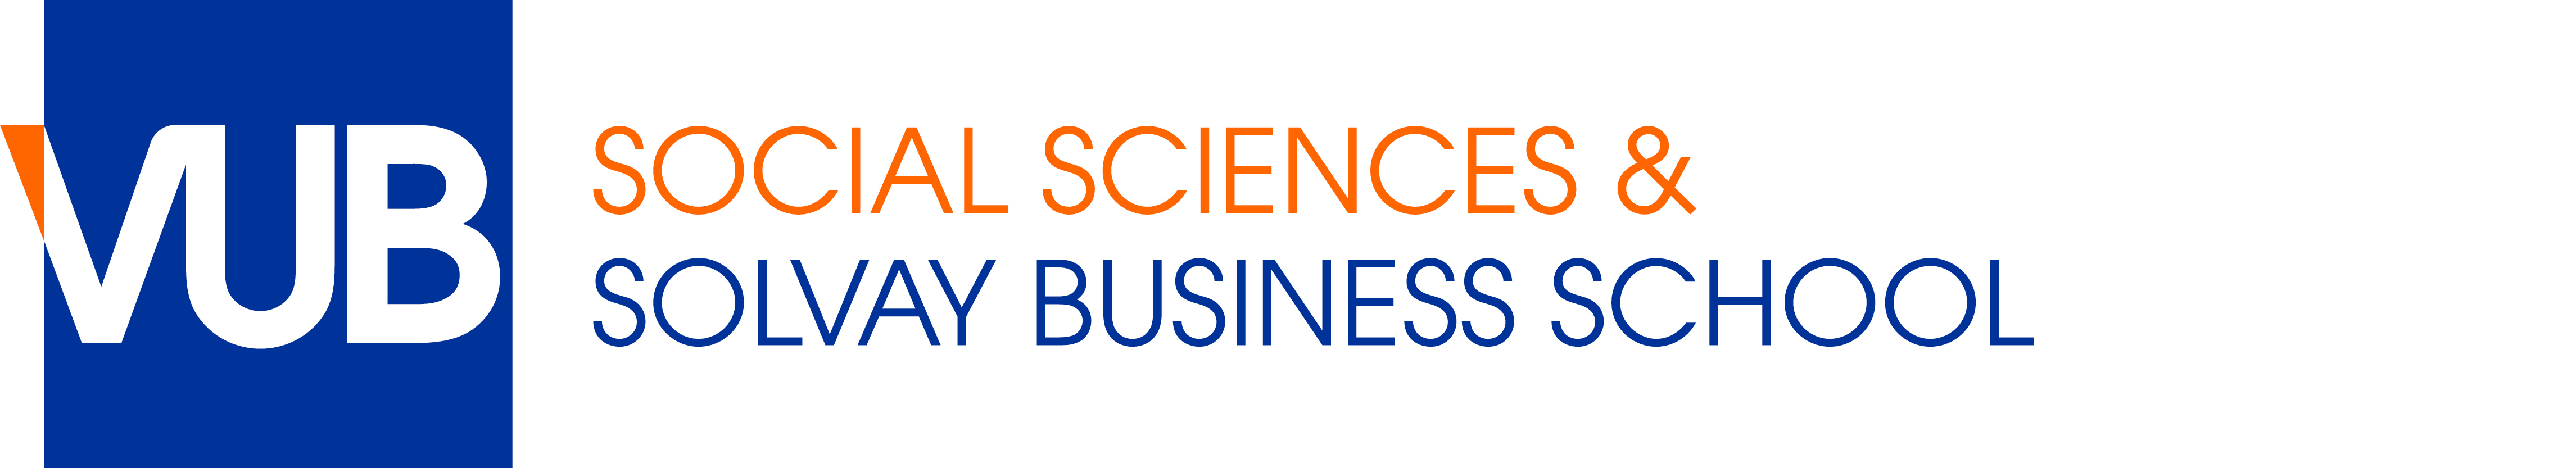 Social Sciences & Solvay Business School